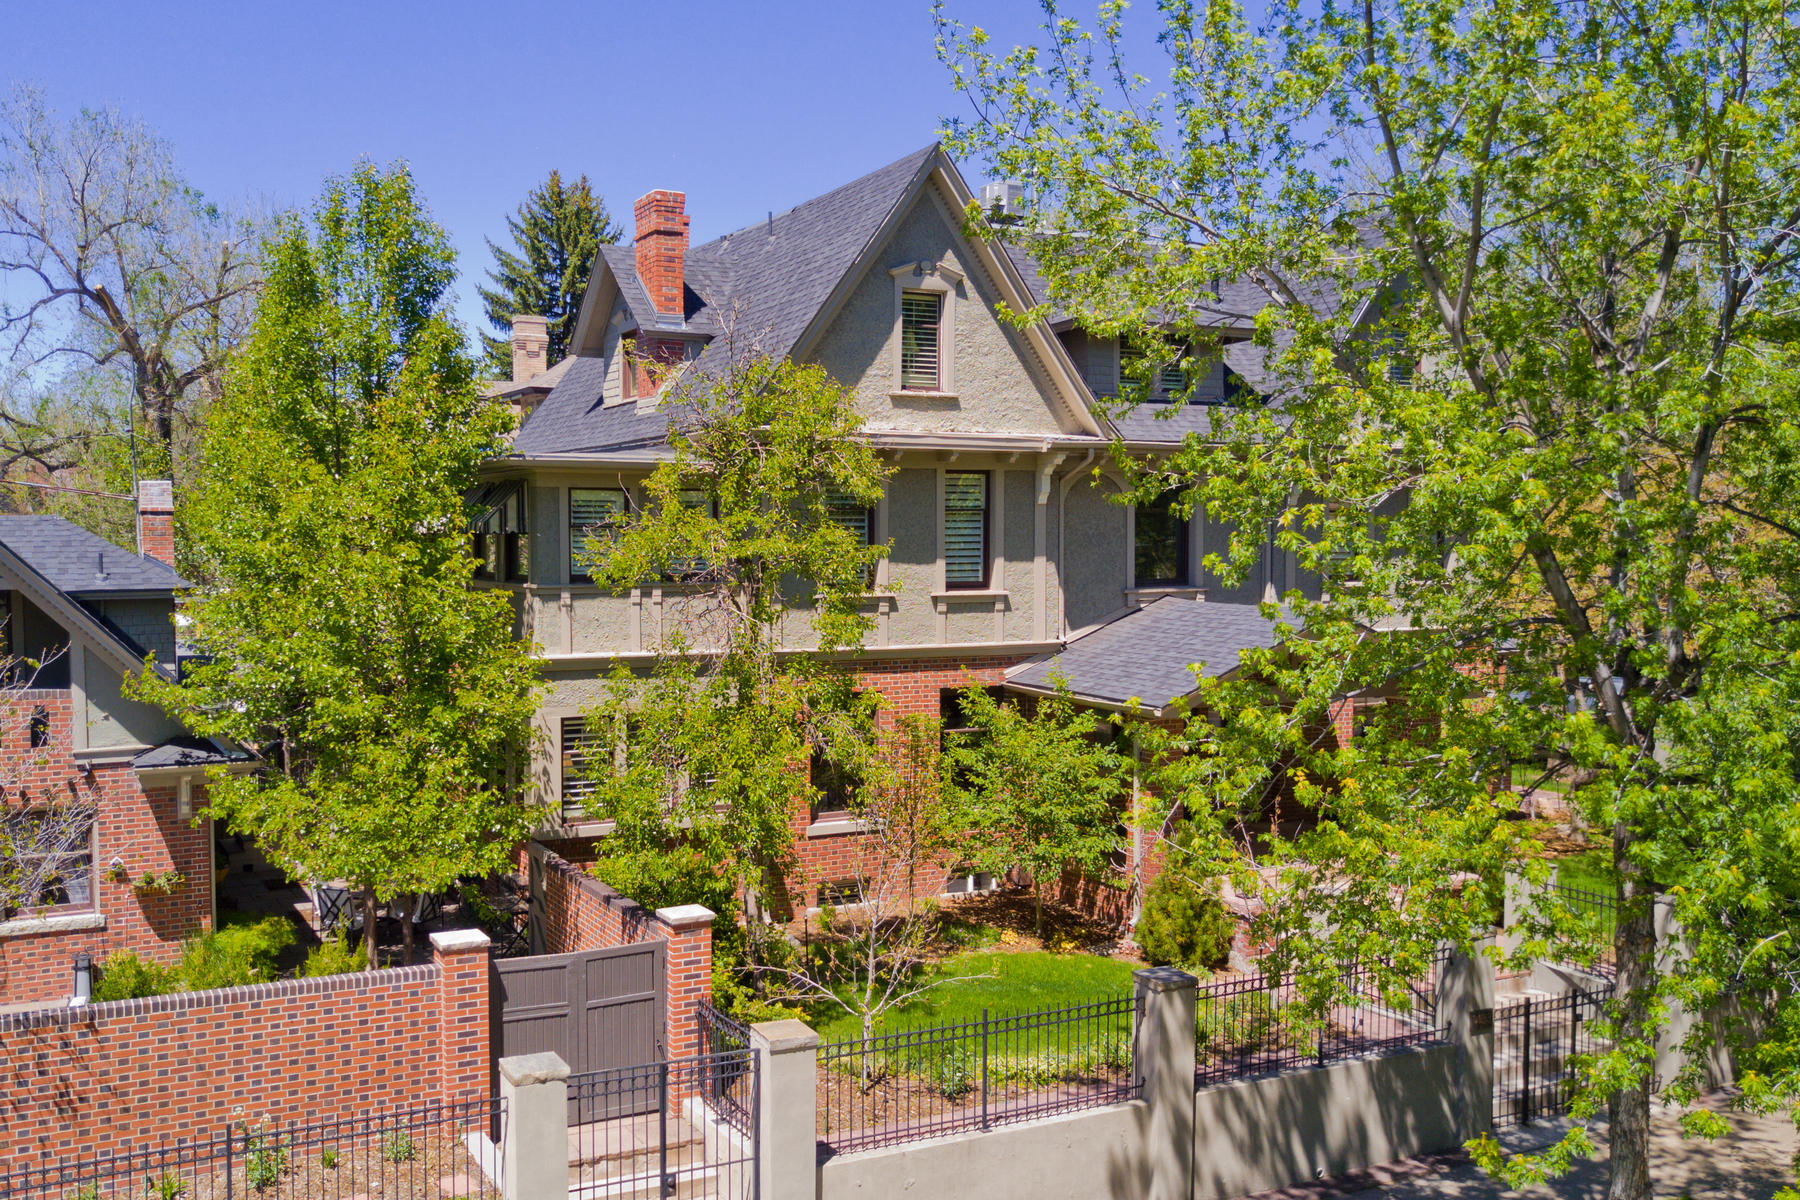 Single Family Home for Active at Historic 7th Avenue 1433 East 7th Avenue Denver, Colorado 80218 United States